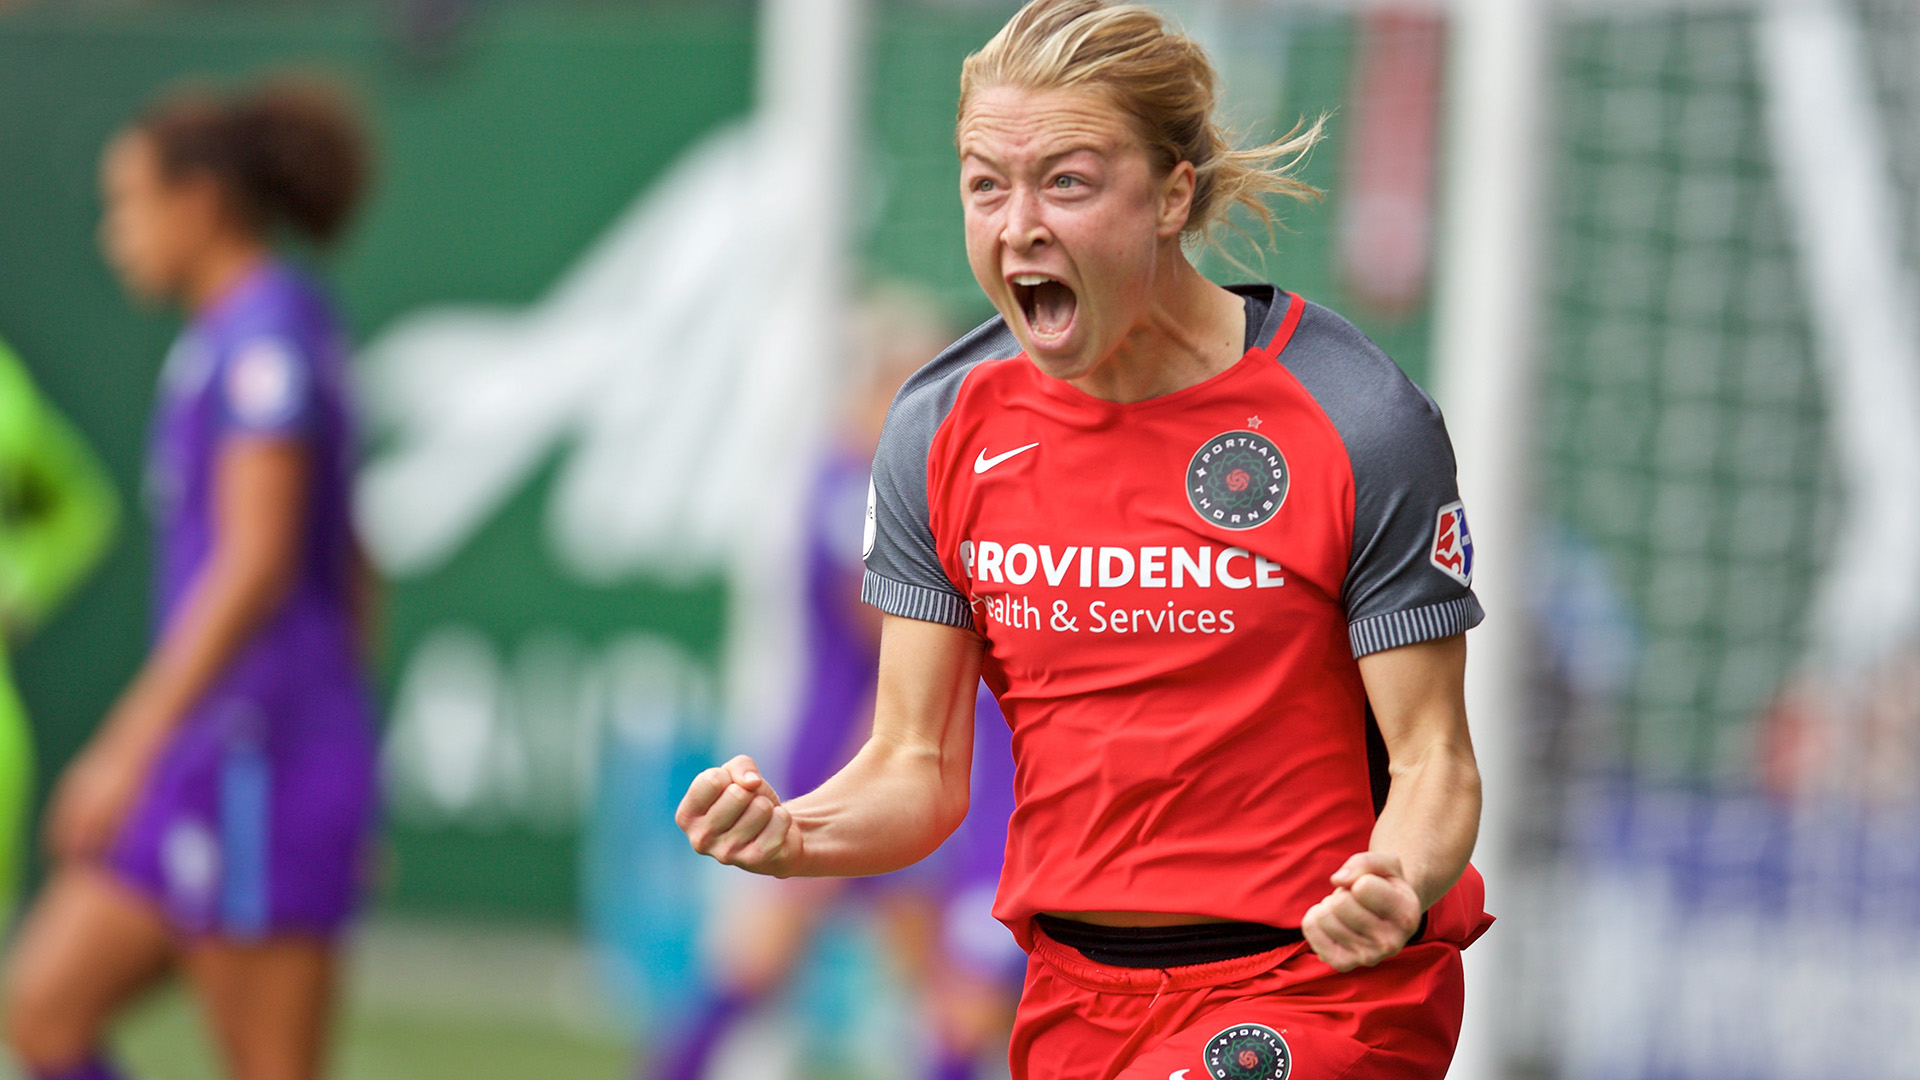 Amanda Horan Kennedy thorns advance to nwsl championship with 4-1 win over pride